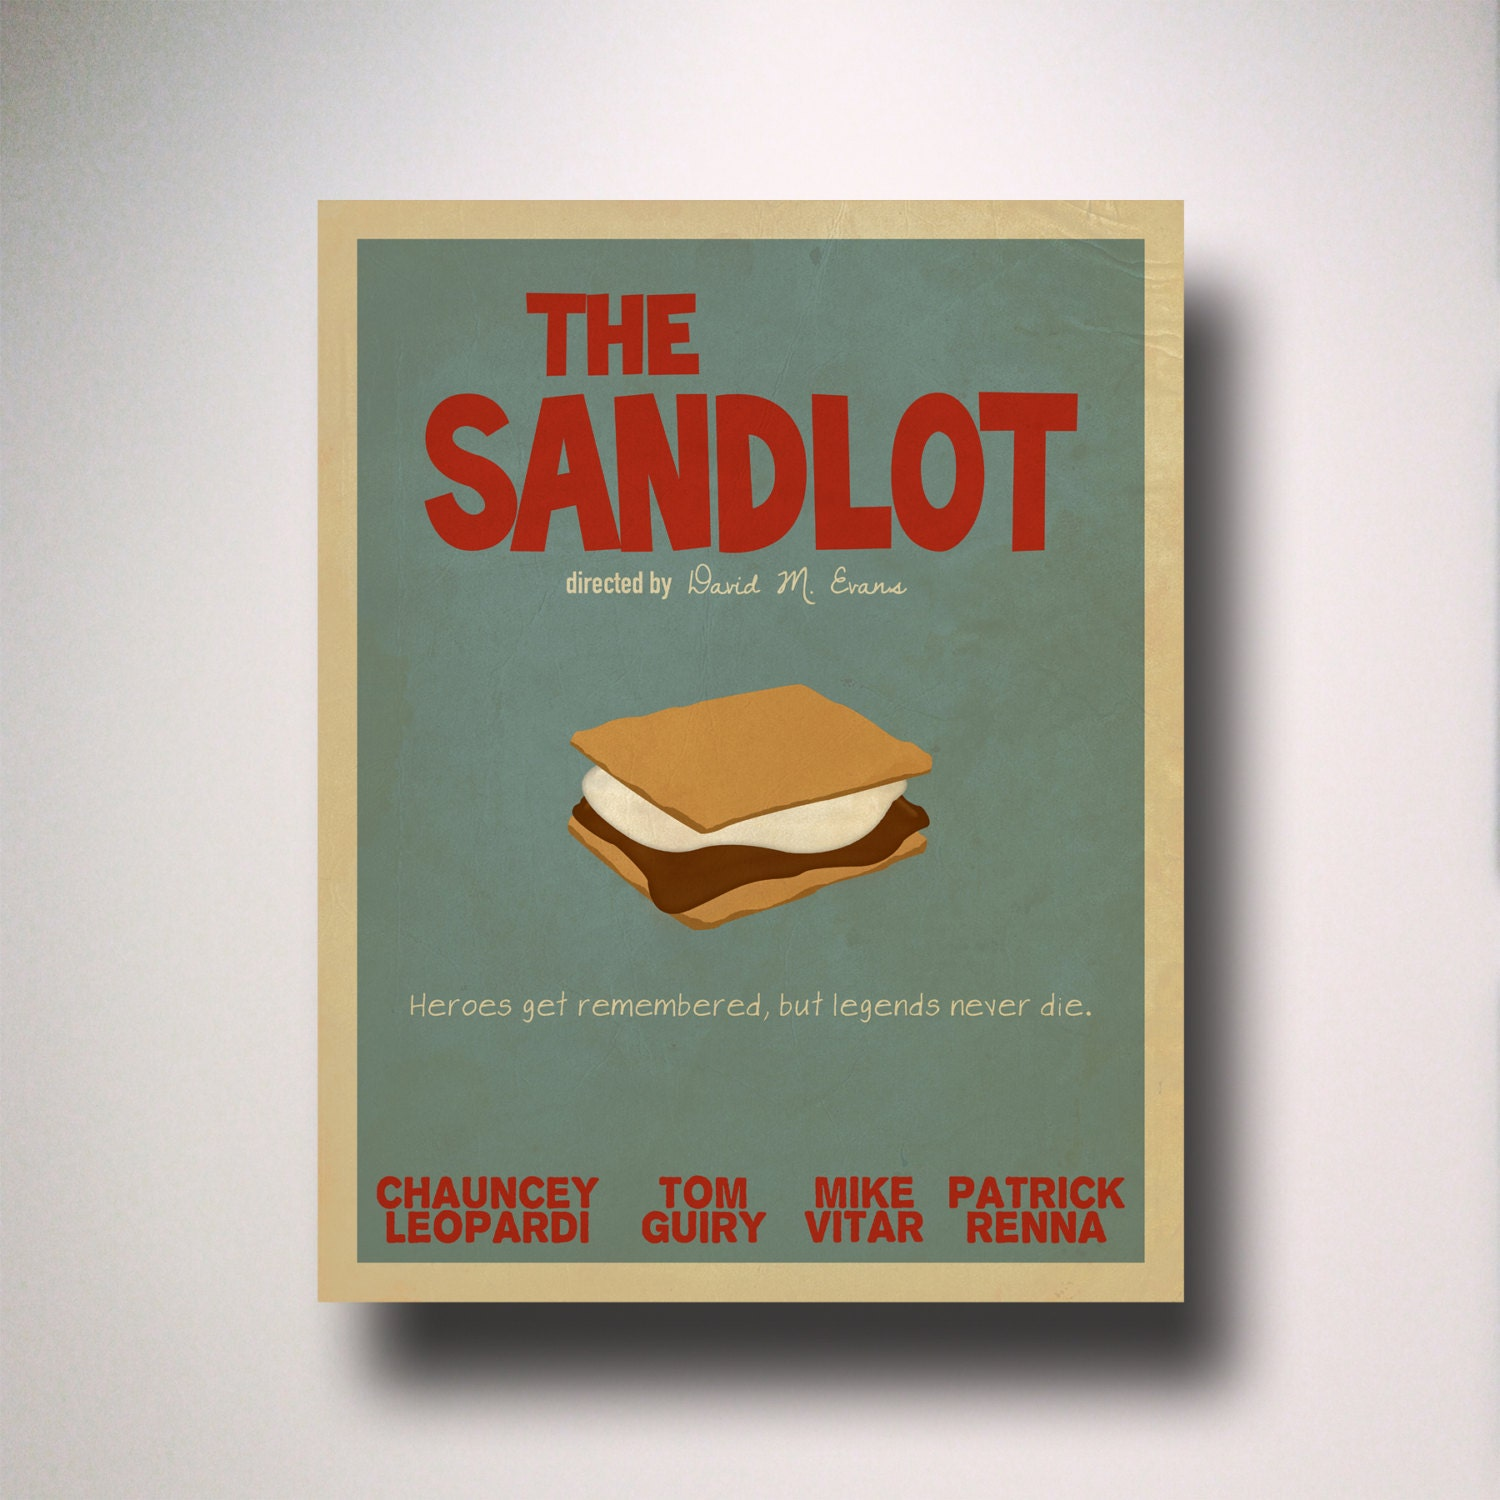 The Sandlot Poster / The Sandlot Minimalist Movie Poster / The